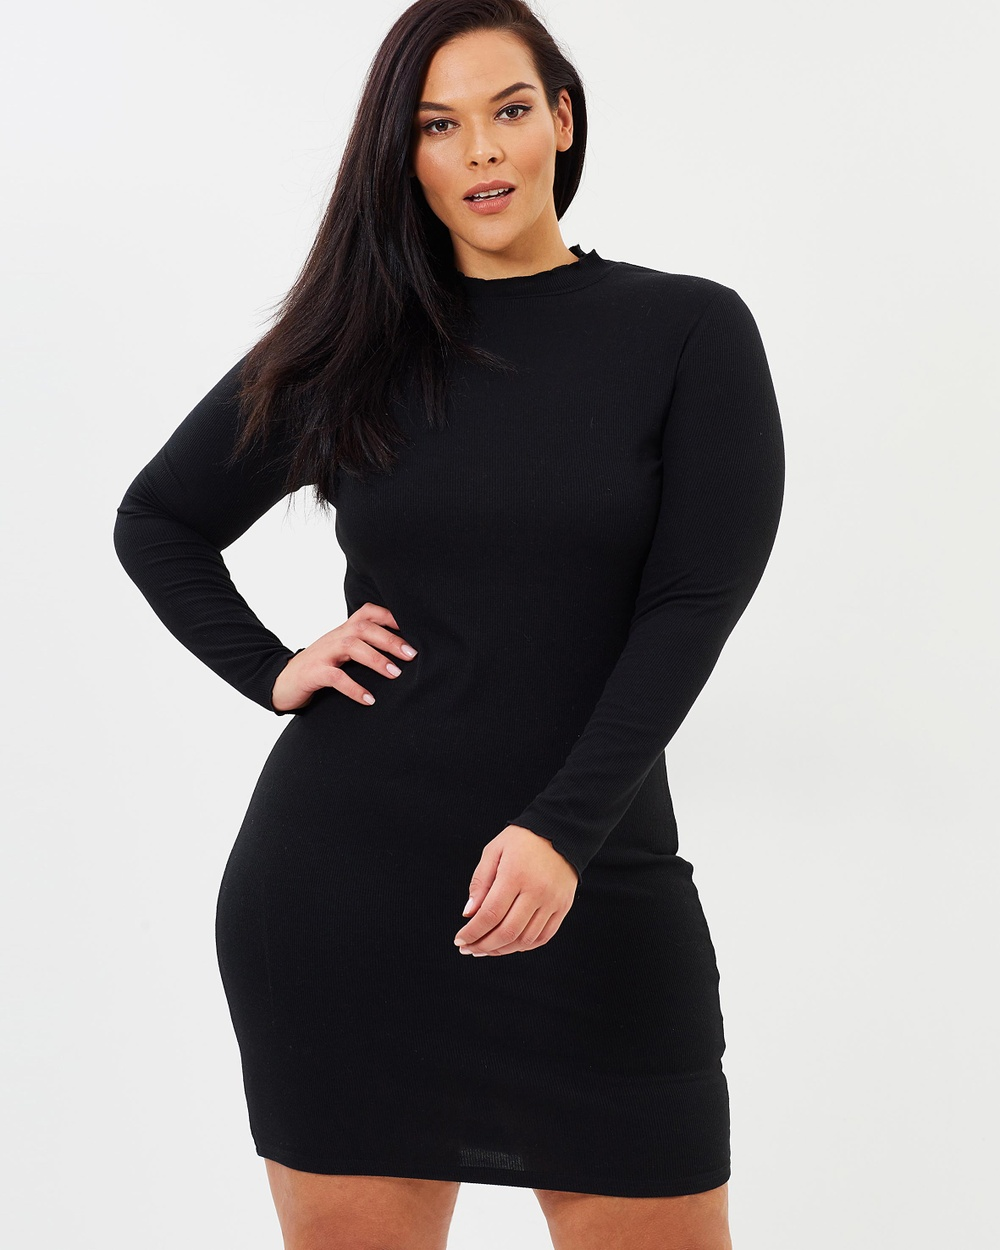 Atmos & Here Curvy ICONIC EXCLUSIVE Essential Ribbed Body Con Dress Bodycon Dresses Black ICONIC EXCLUSIVE Essential Ribbed Body-Con Dress